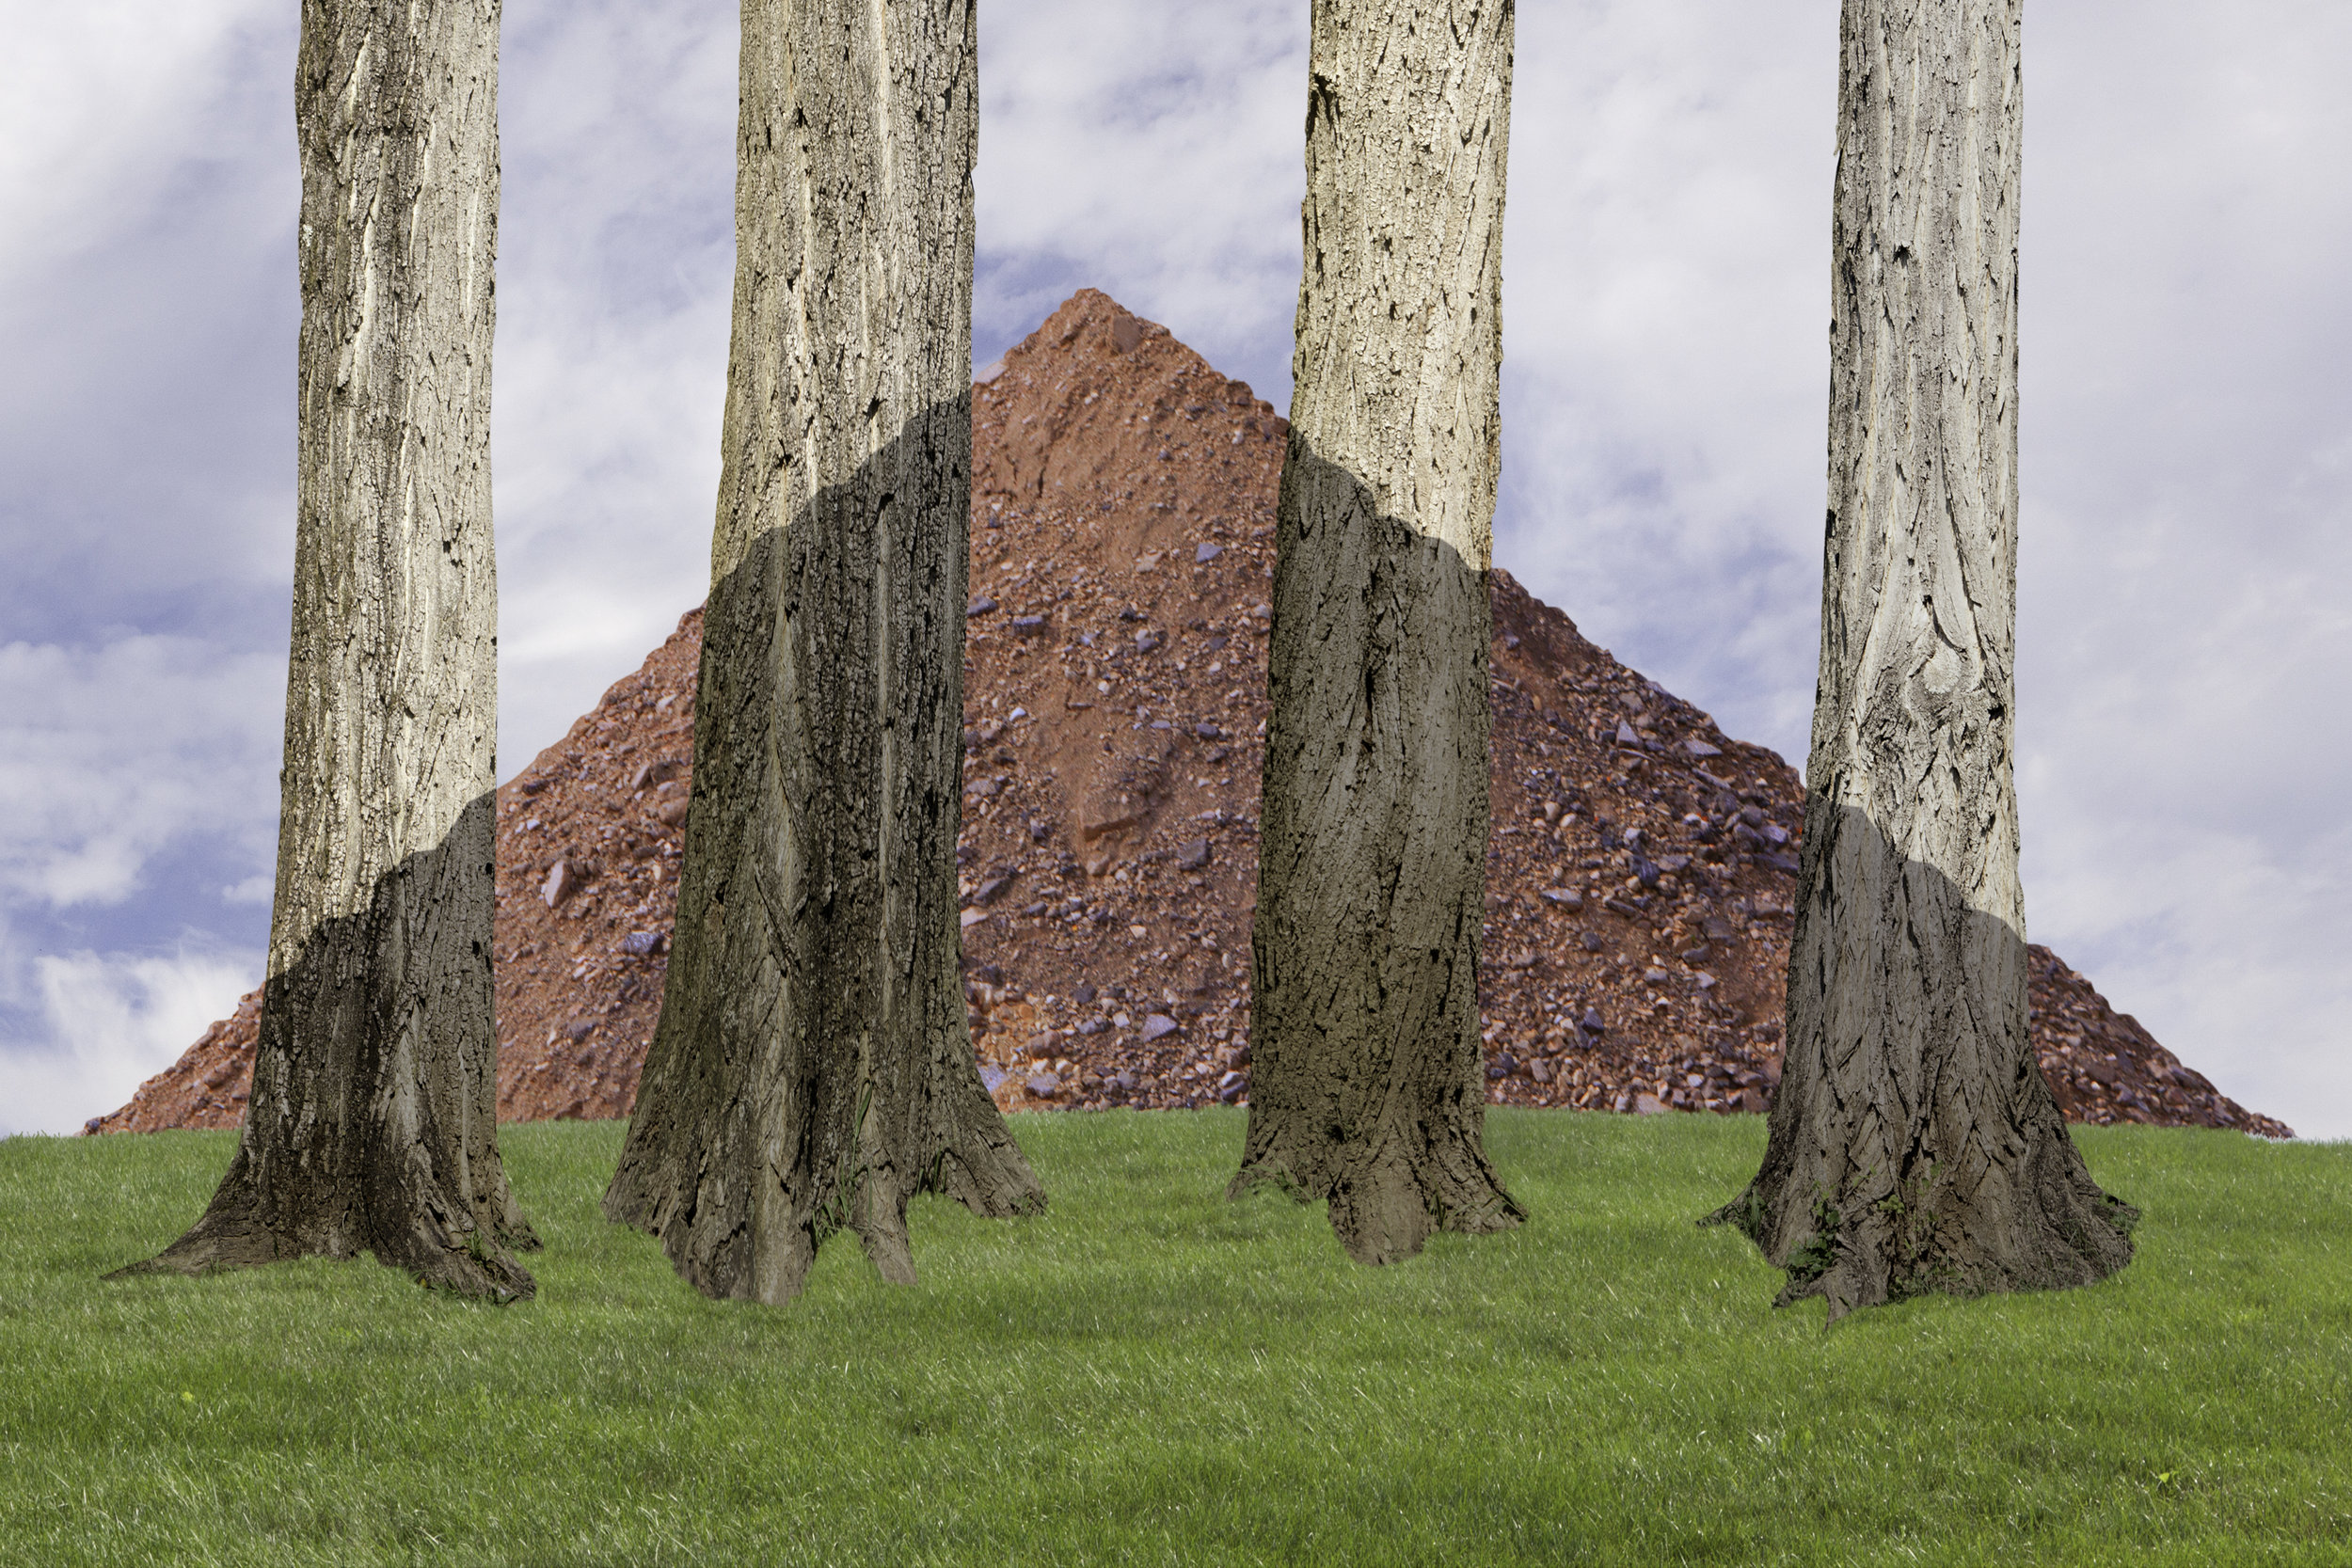 Trees and Hill, 2018, archival pigment print